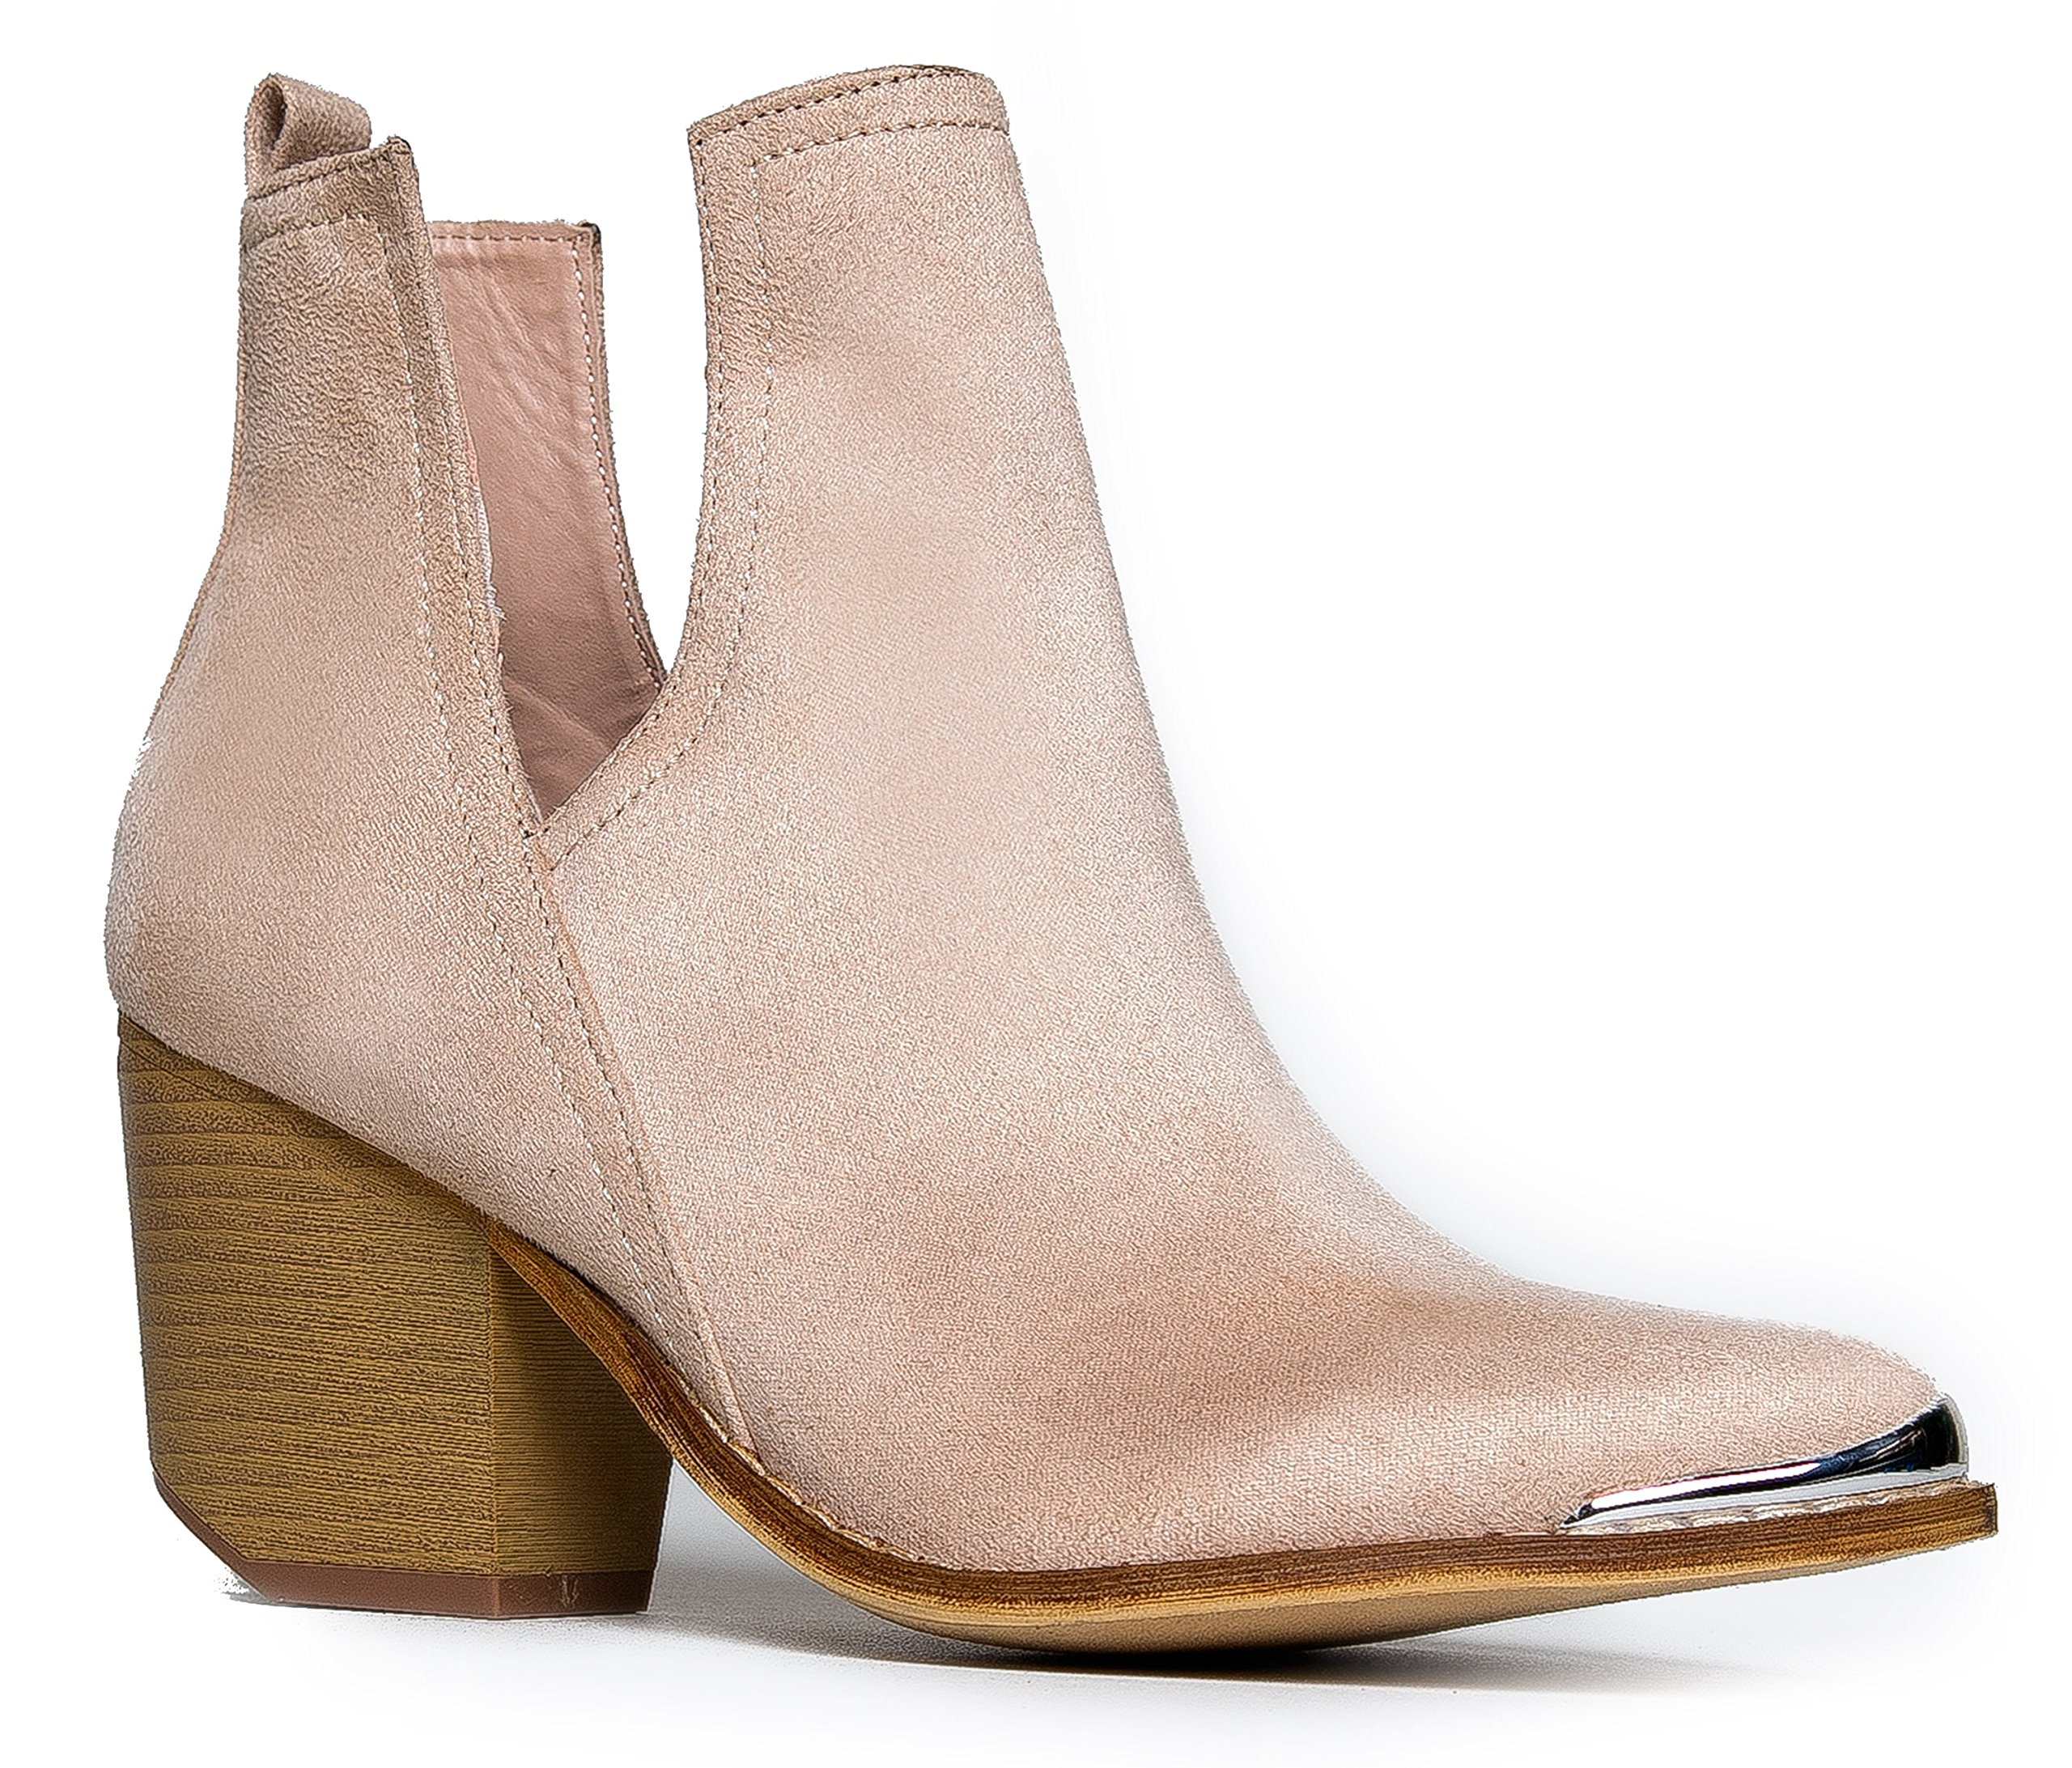 Western Slip On V-Cut Out Stacked Heel Bootie – Side Cut Metal Tipped Ankle Pull Cowboy Women's Boot, 8 US, Nude